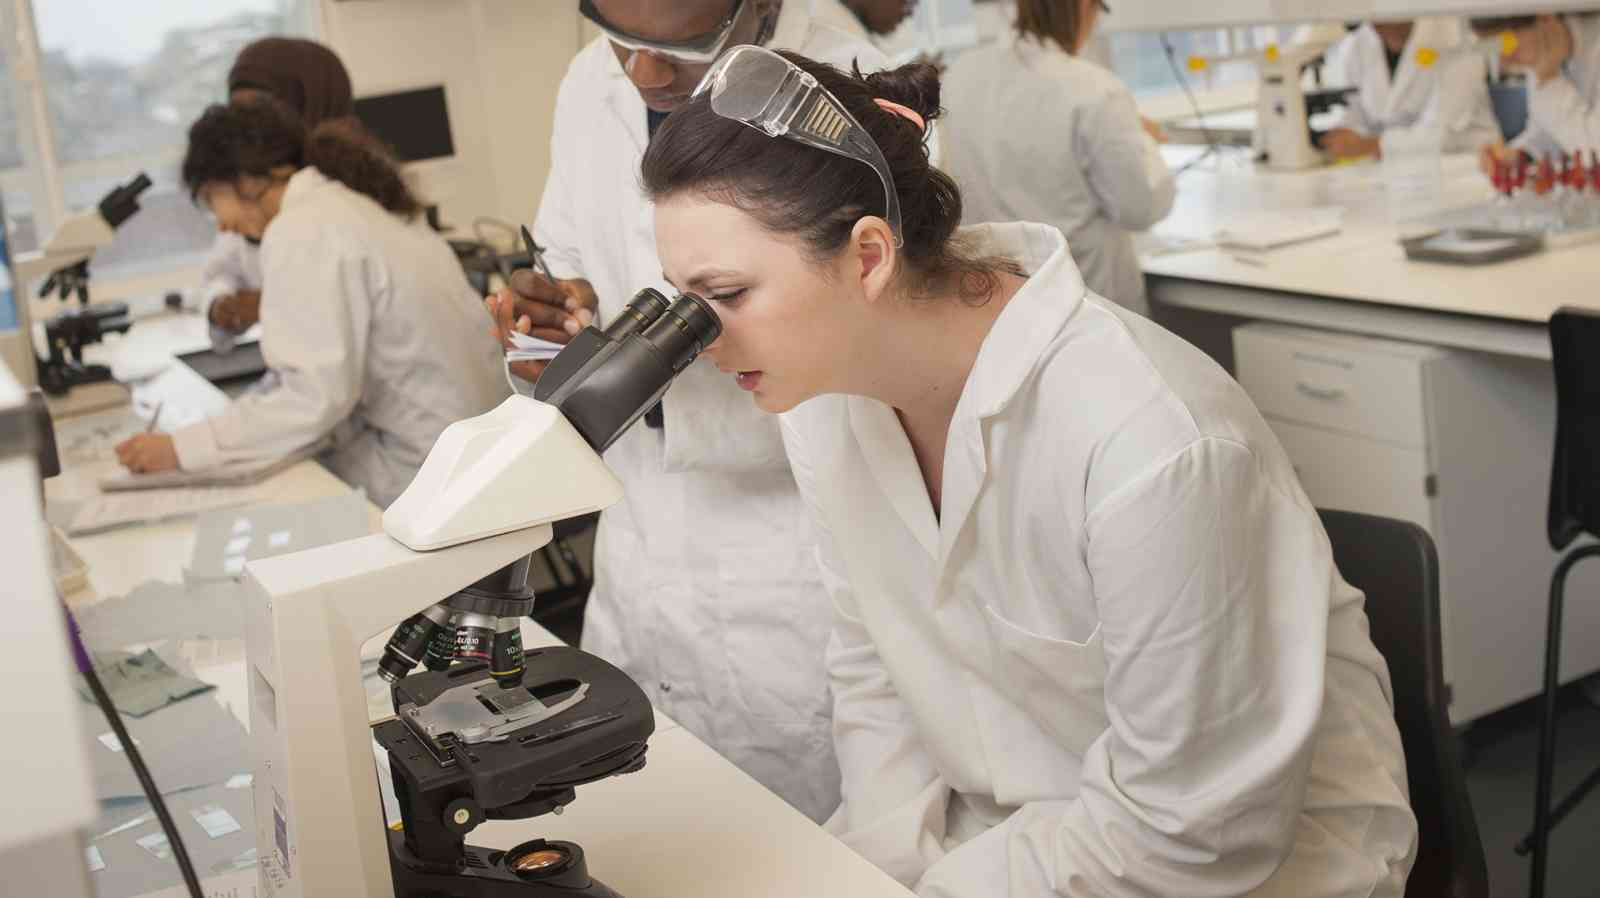 Biomedical Science BSc(Hons) degree course - London undergraduate